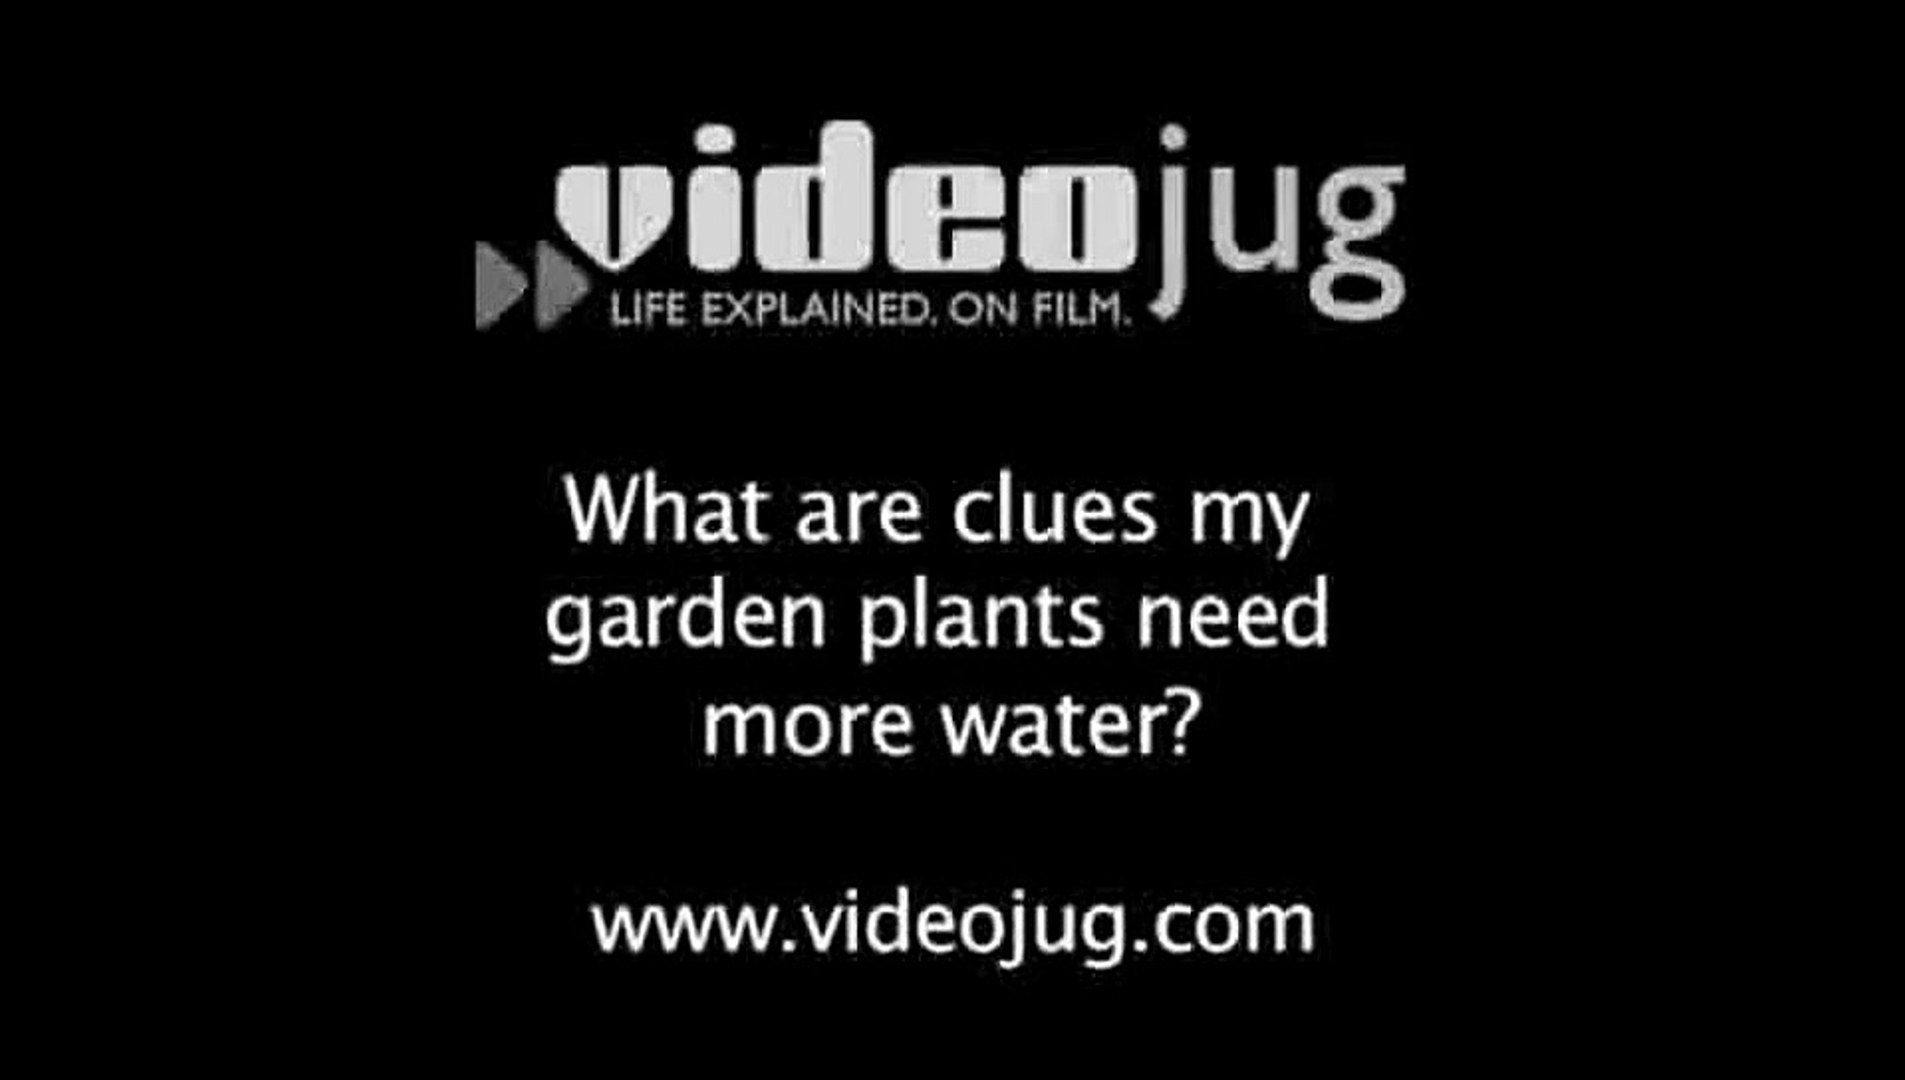 What are clues my garden plants need more water?: How To Know If Your Garden Plants Need More Water